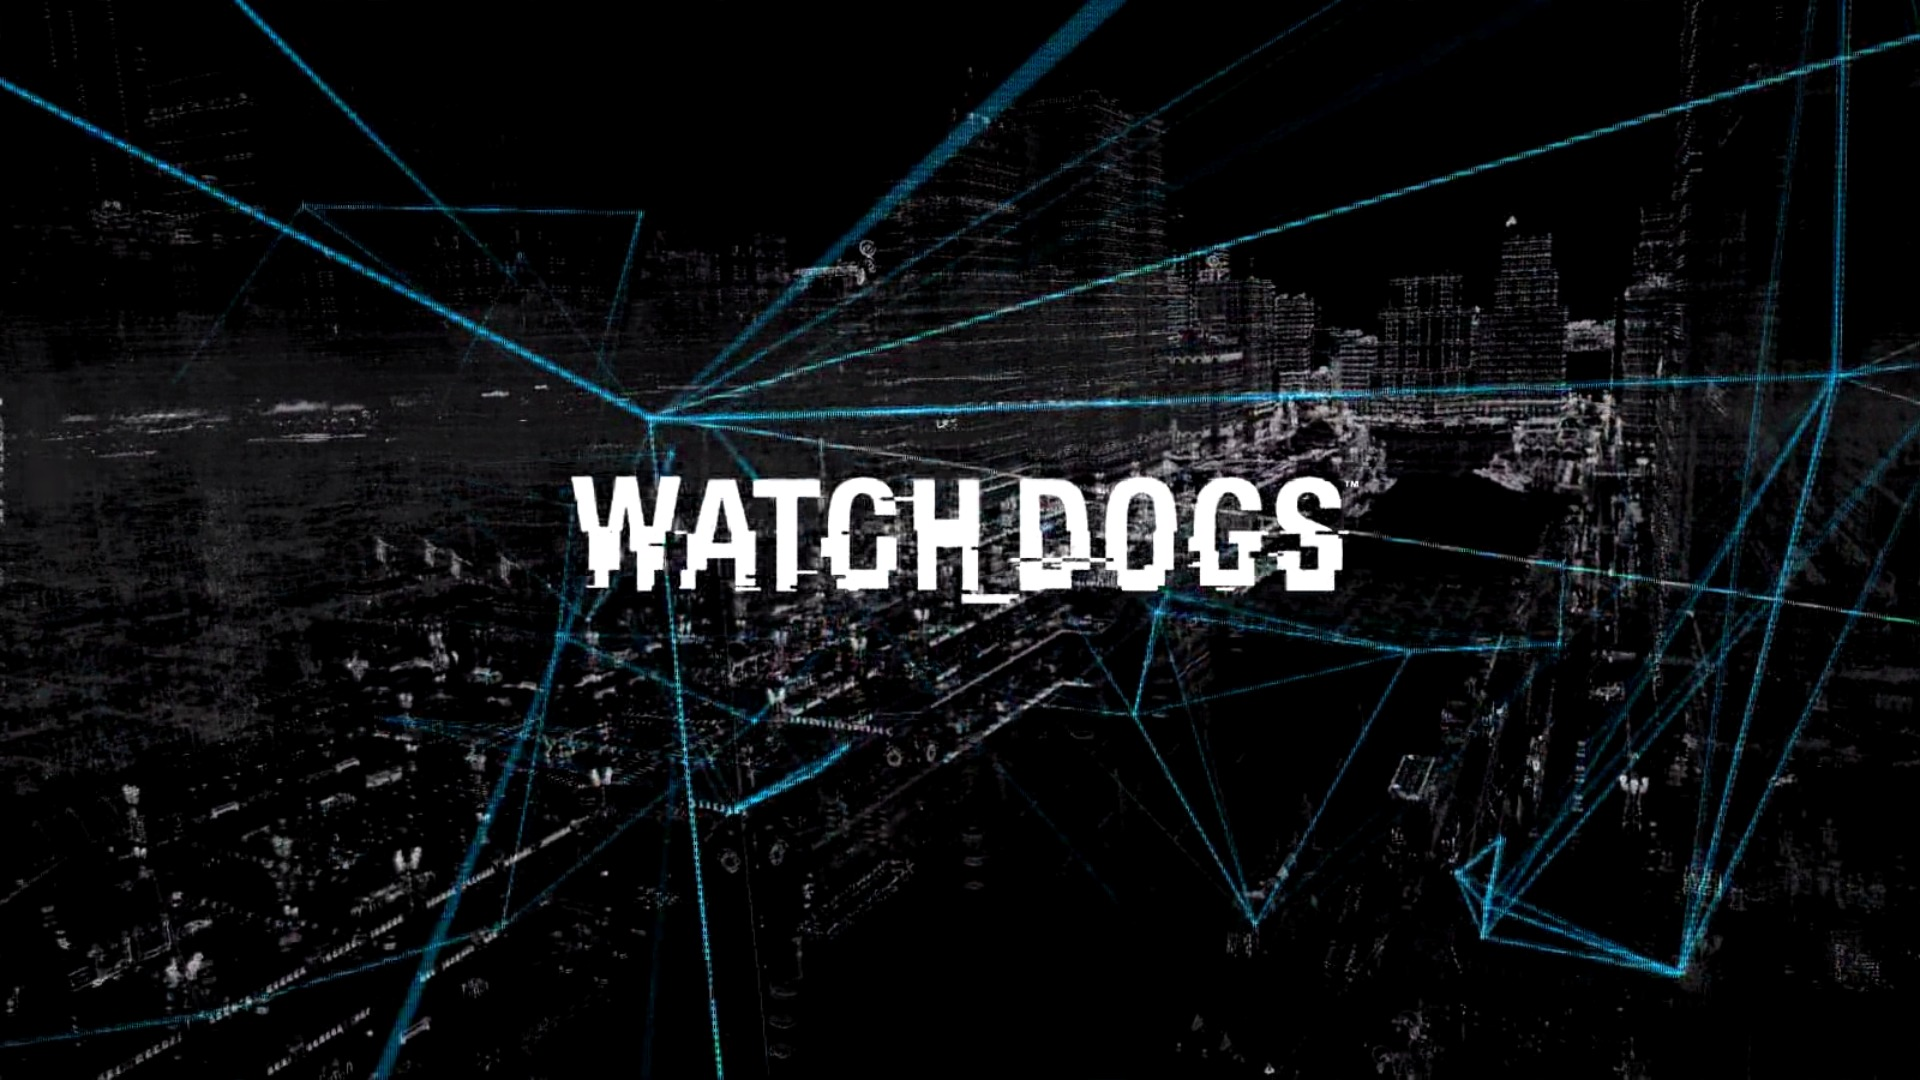 WATCH_DOGS™_20140527181100